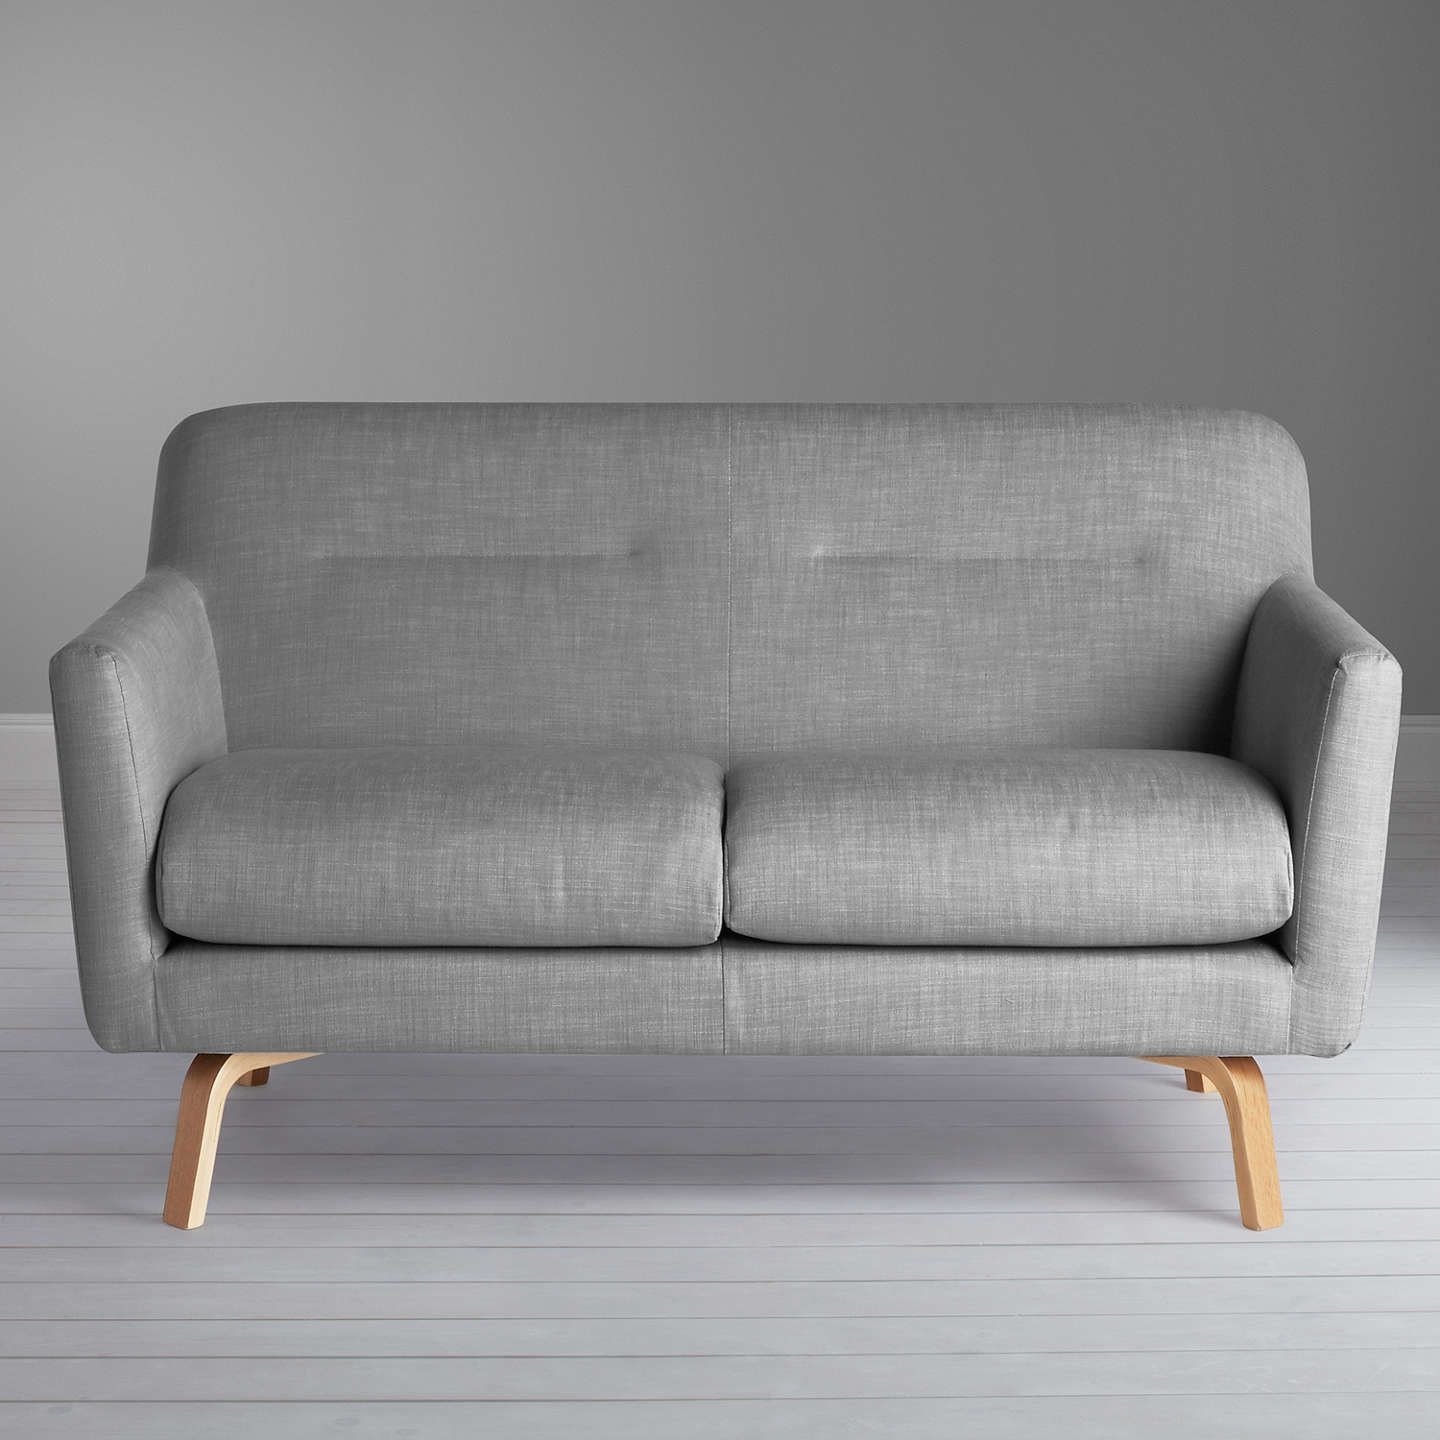 House By John Lewis Archie Ii Small 2 Seater Sofa Light Leg Saga Grey 2 Seater Sofa Sofa House By John Lewis